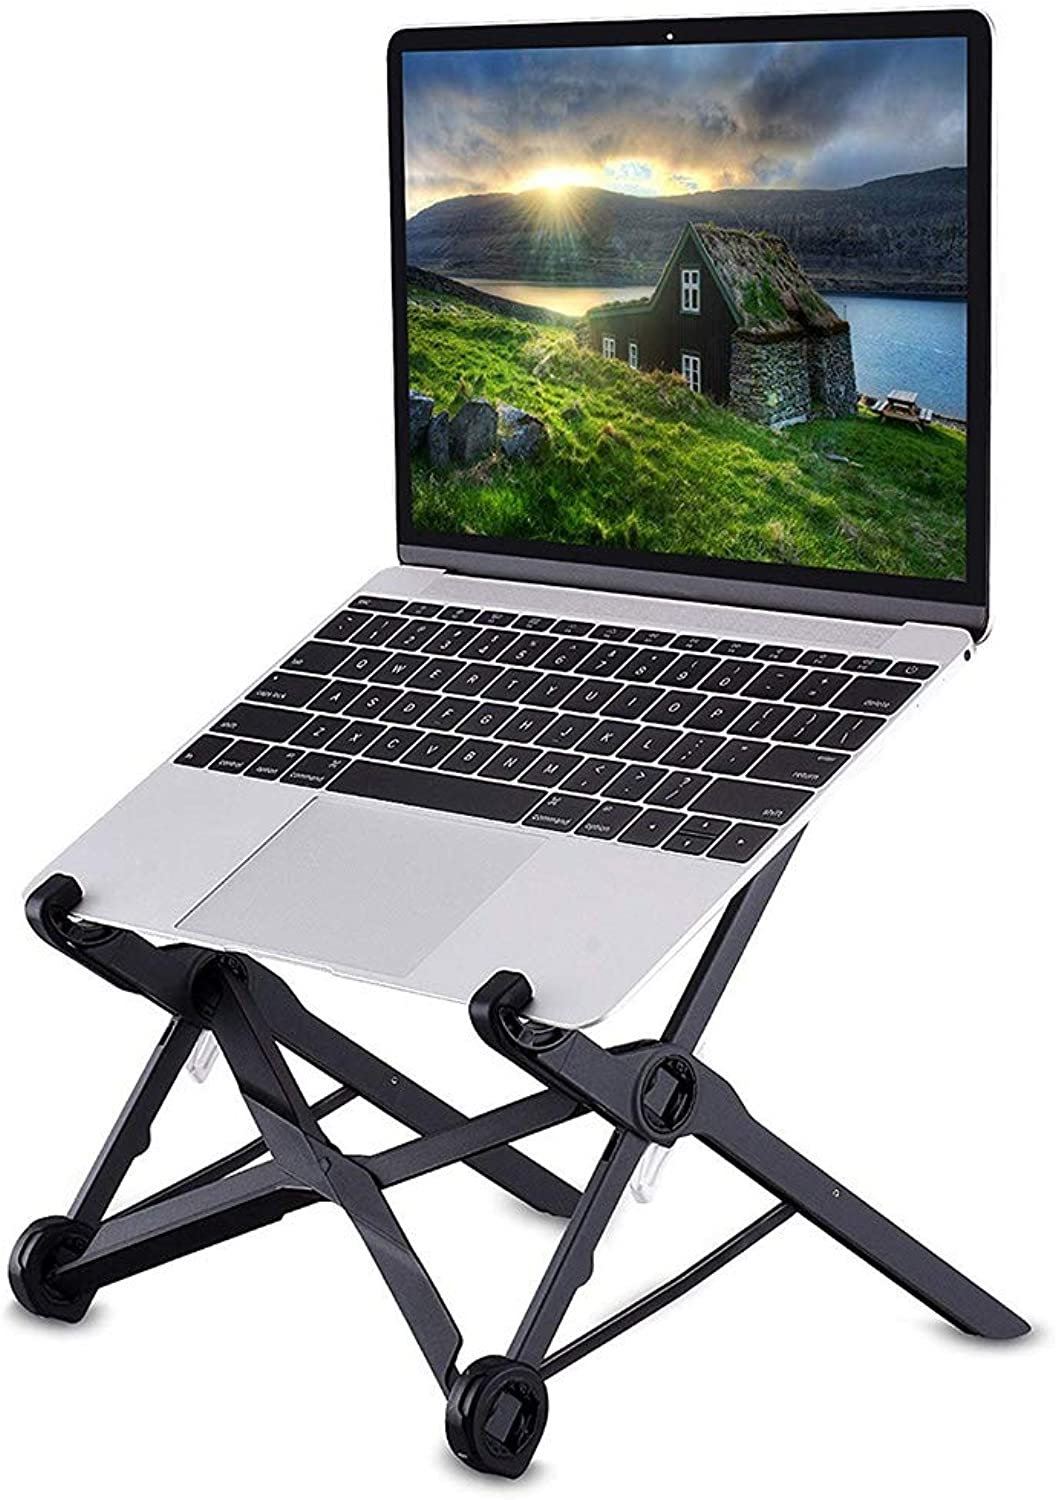 Laptop Stand, Laptop Stand Foldable Adjustable Travel Notebook Stand Desktop Saver Stand